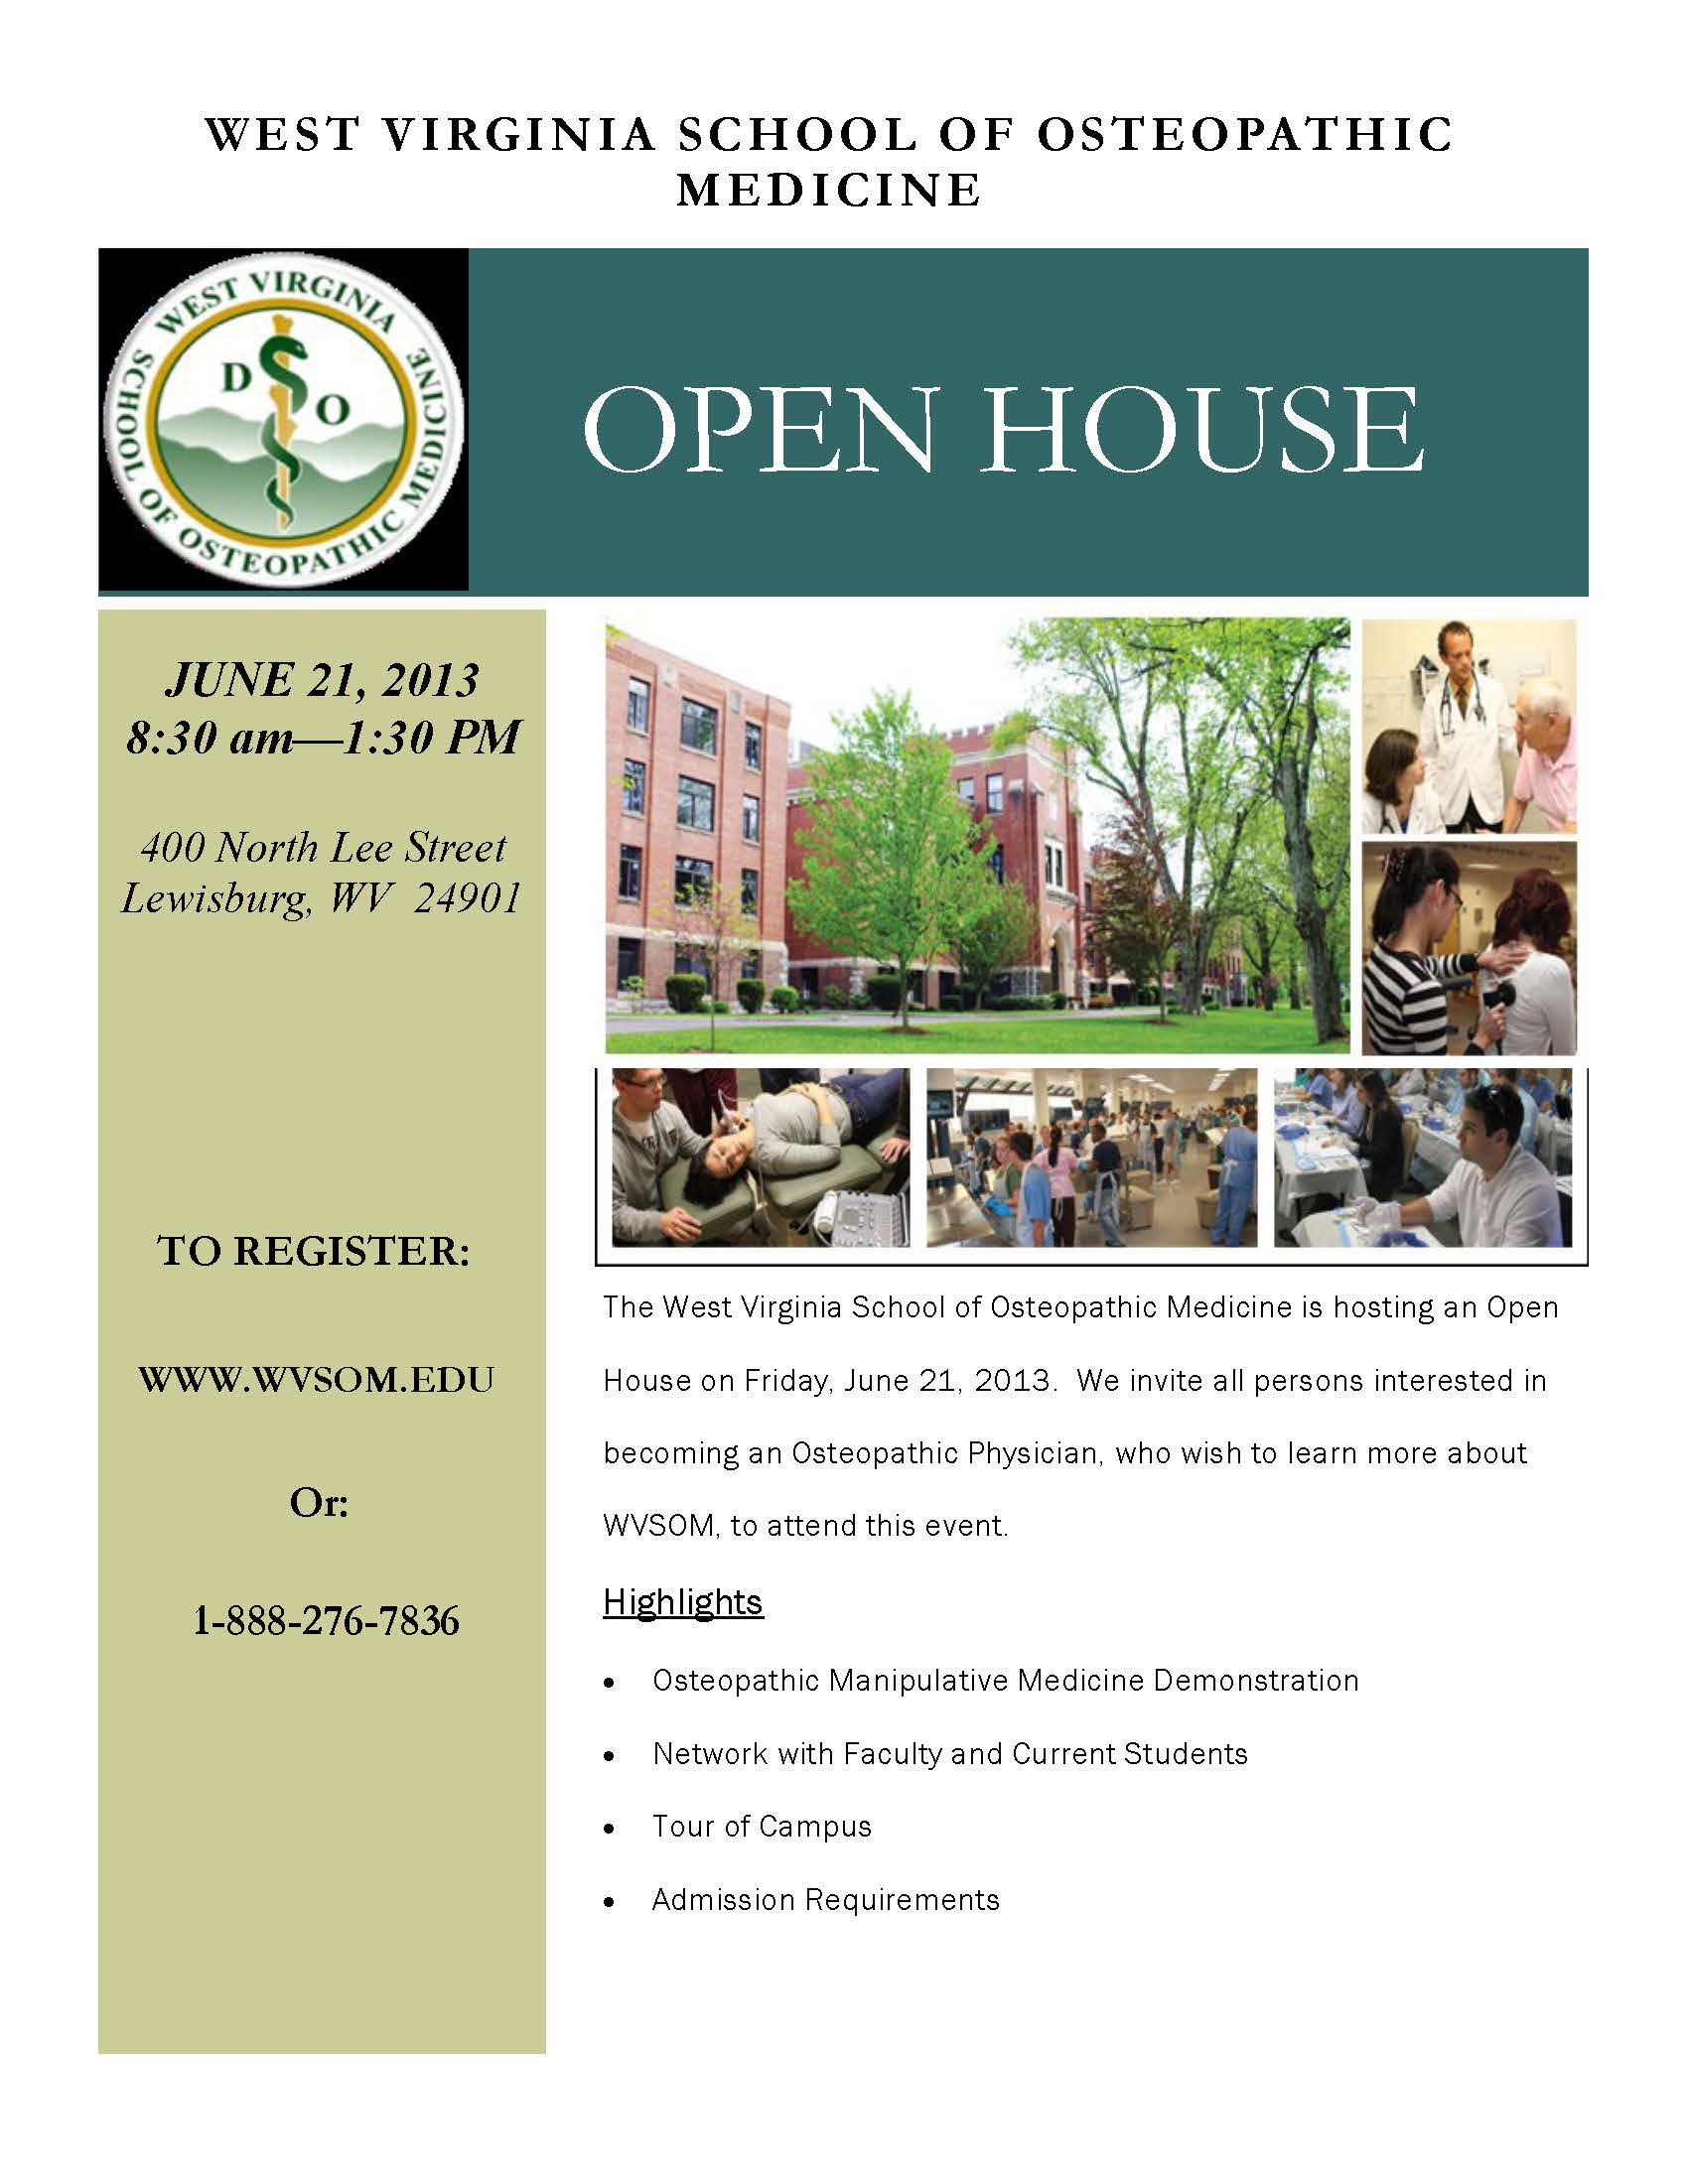 Open House Flyer for June 21, 2013 - PDF